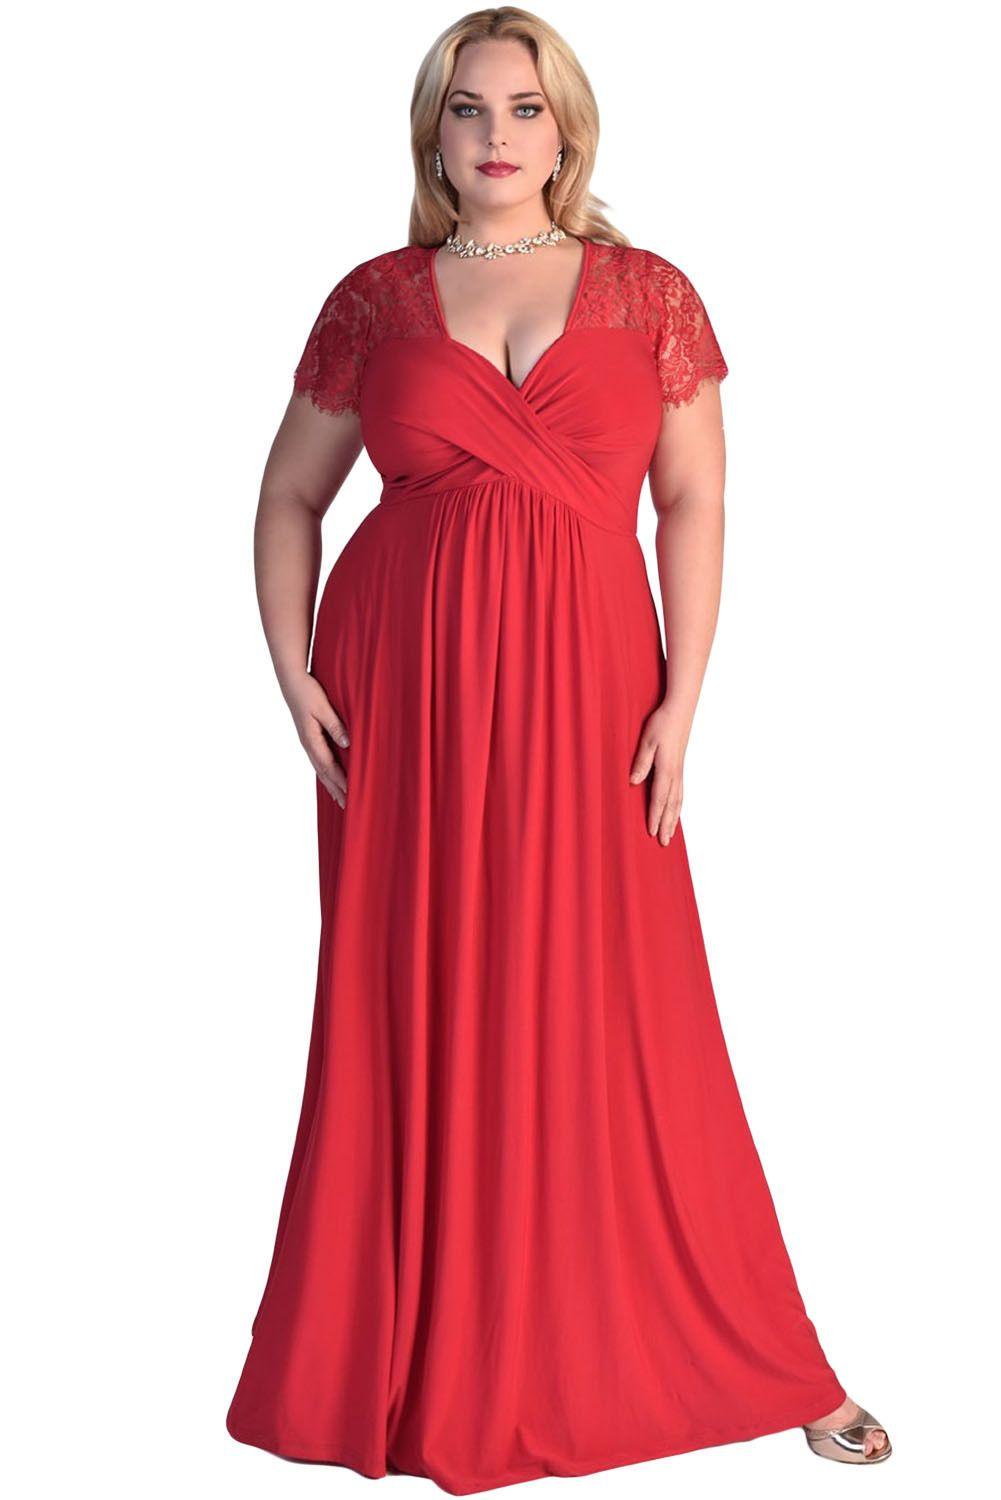 Cool awesome stunning red formal lace dress plus size x xxxl short